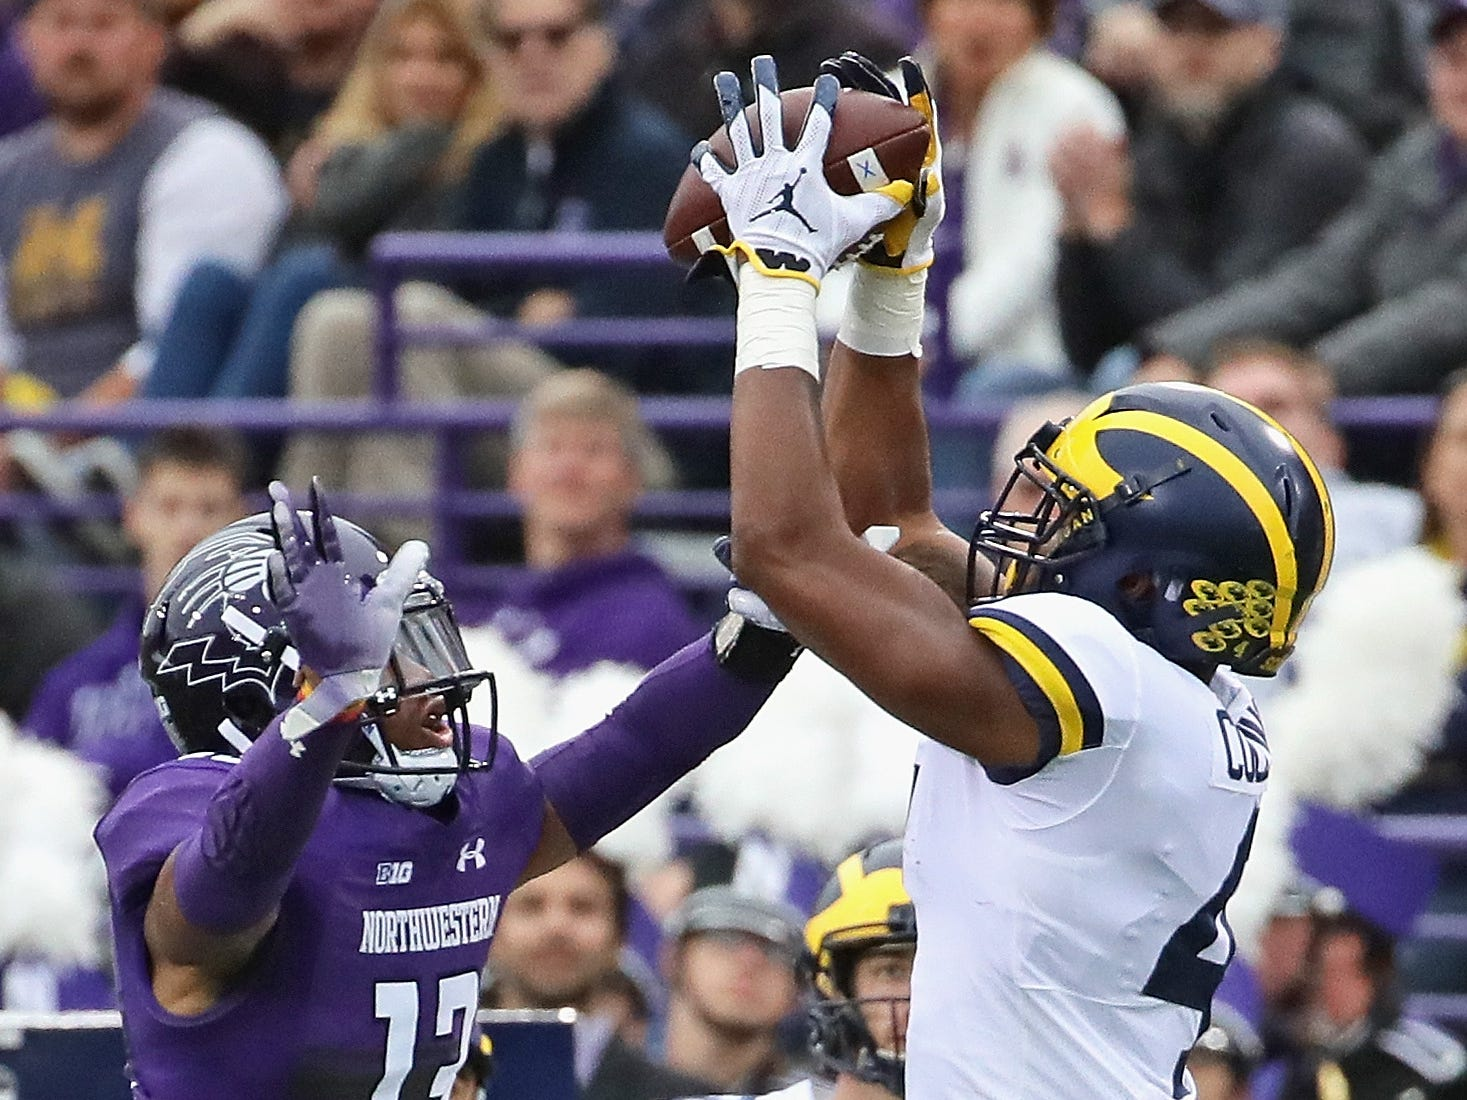 Michigan's Nico Collins tries to catch a pass over JR Pace of Northwestern at Ryan Field on Sept. 29, 2018 in Evanston, Ill.